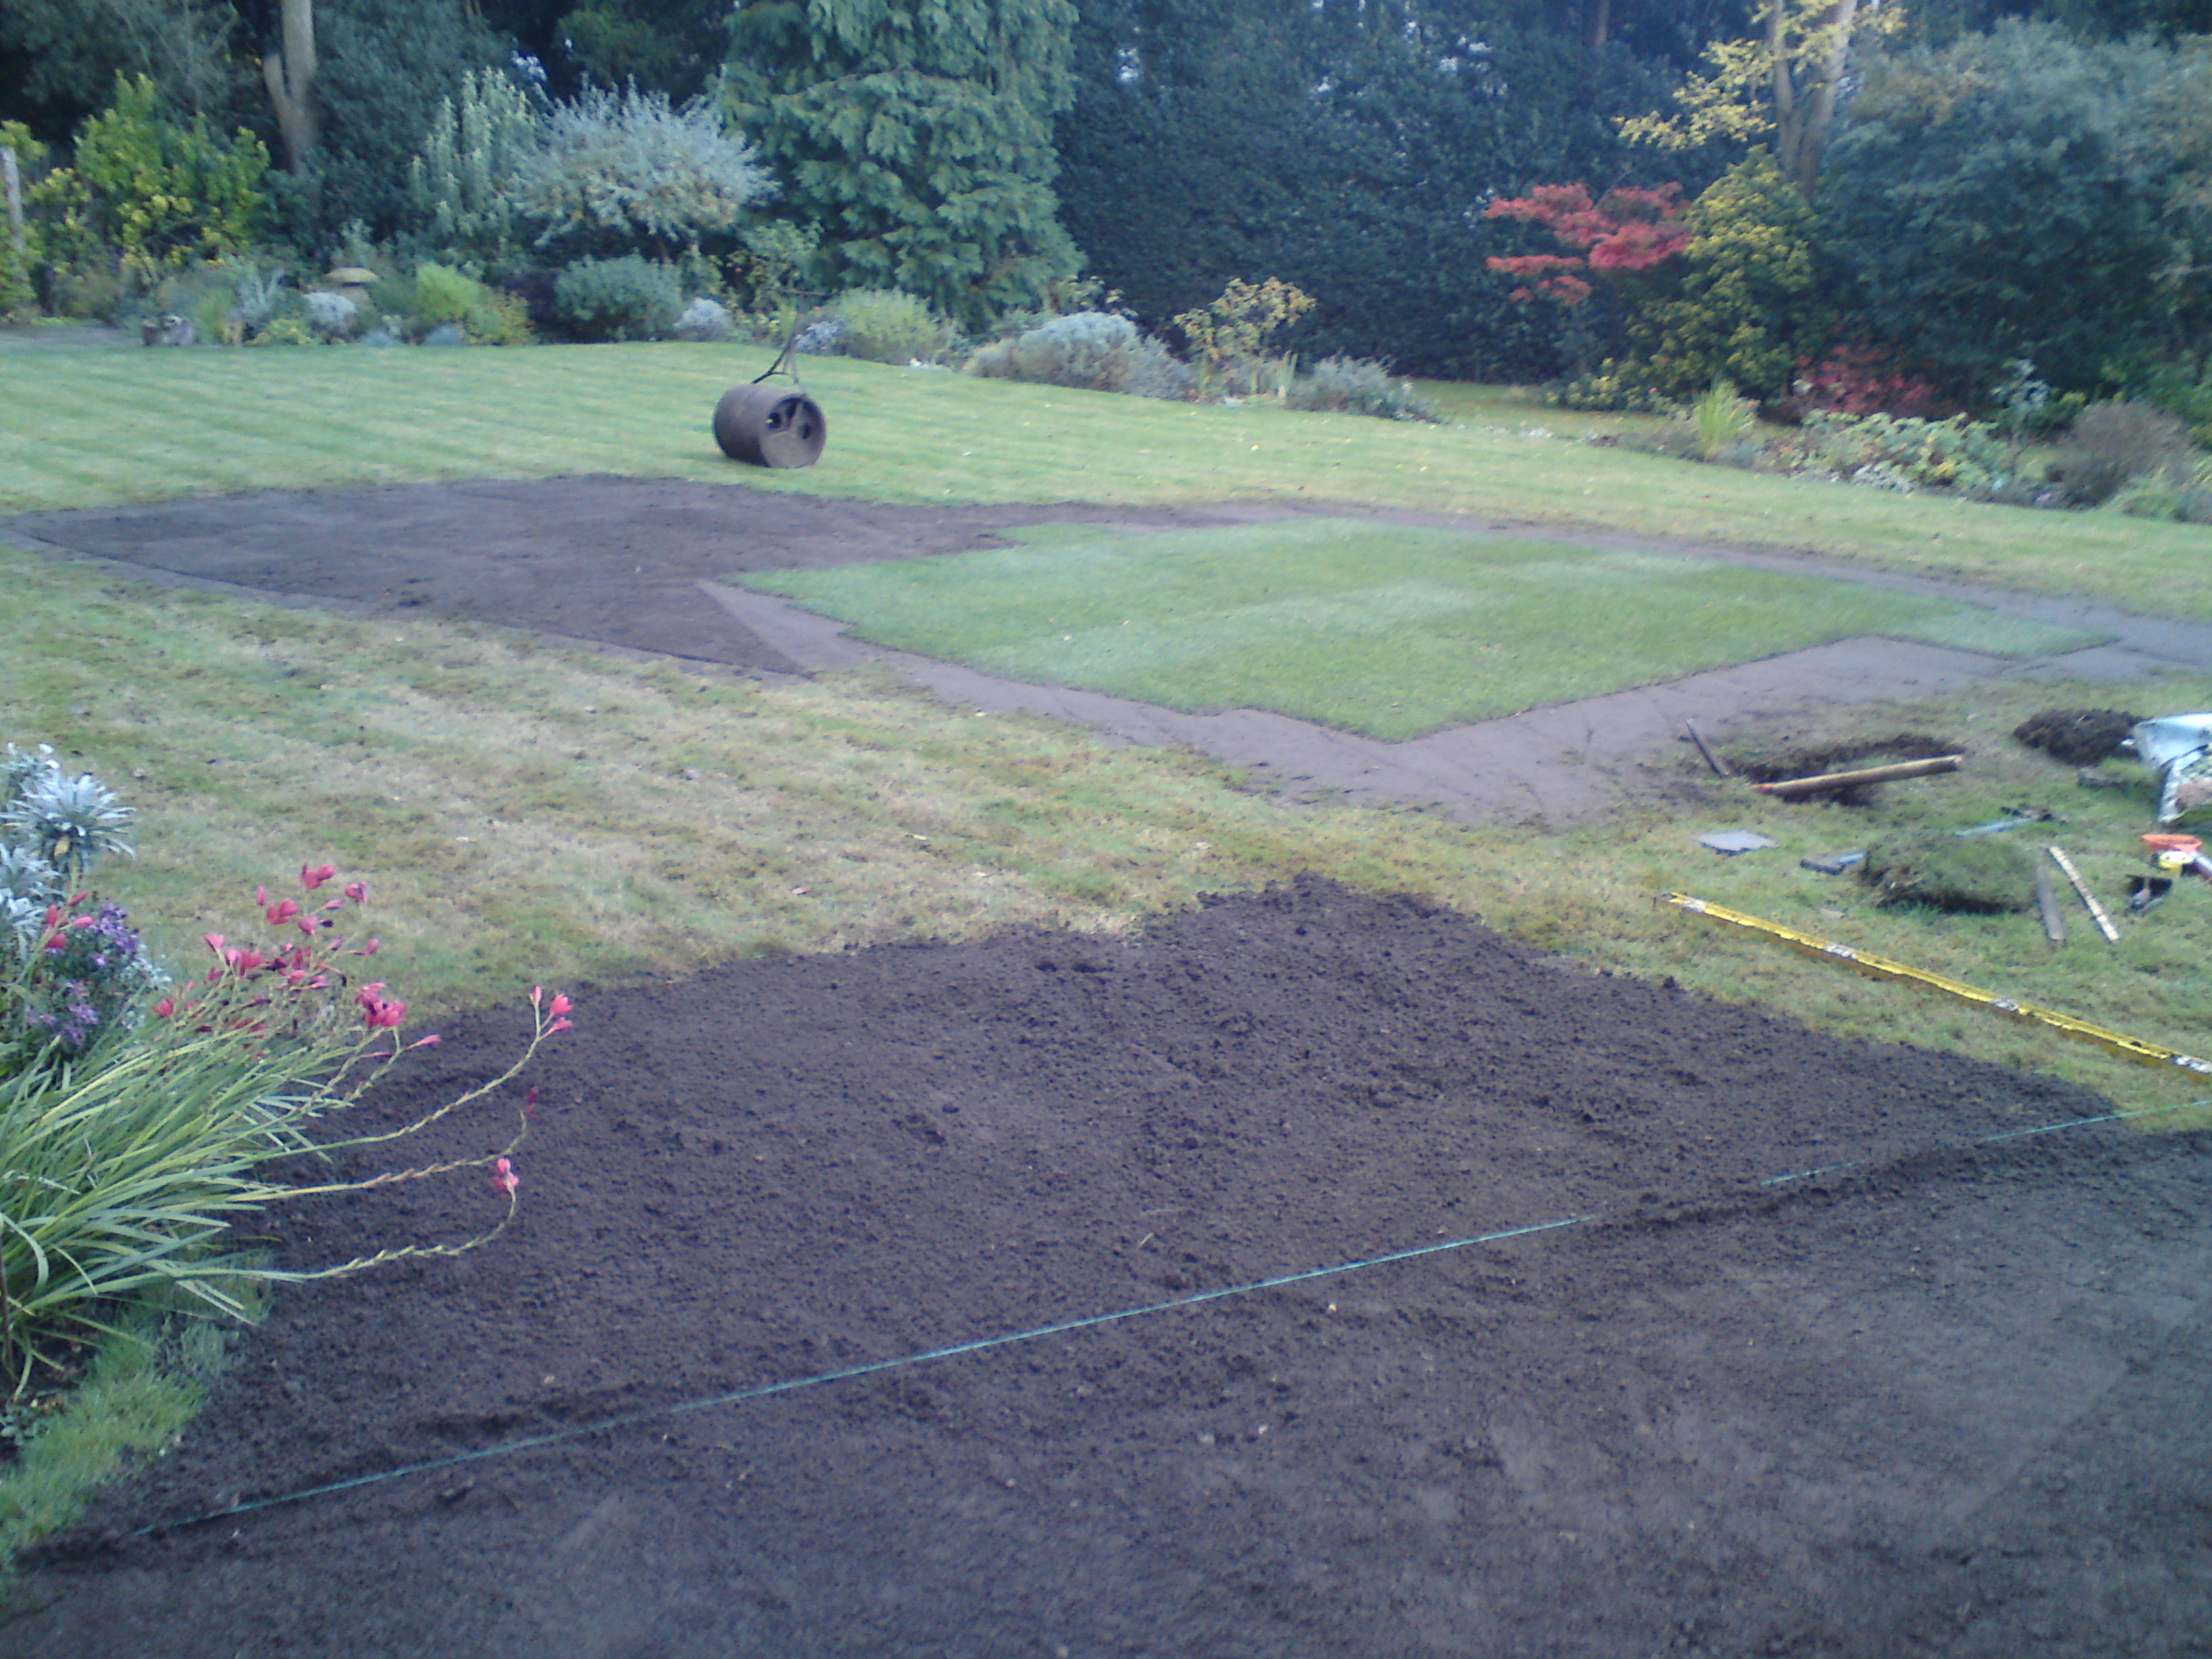 lawn repair and maintenance, Wimbledon common/park